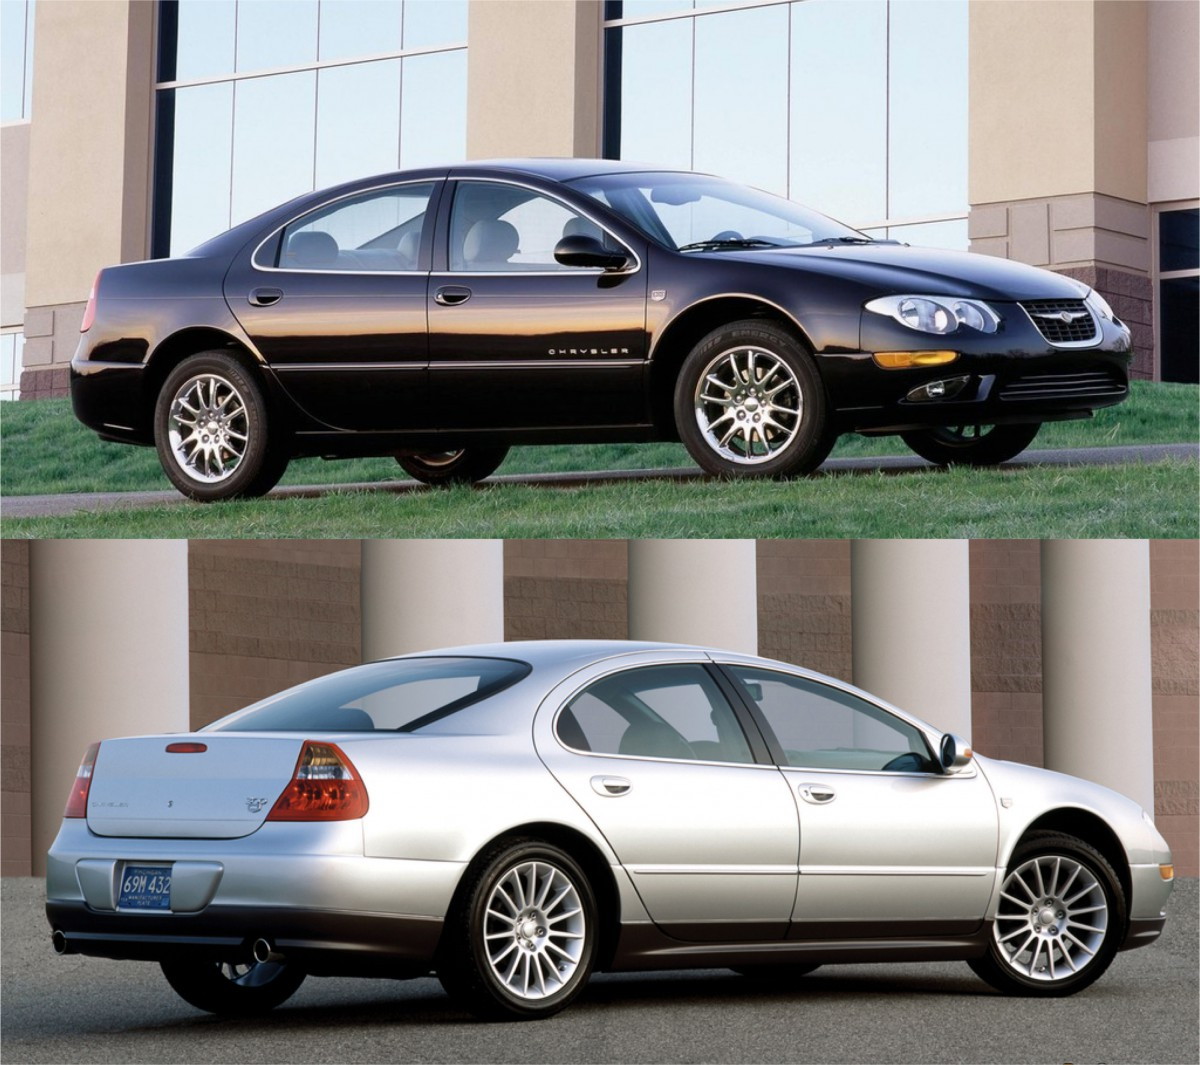 Curbside Classic: 2003 Chrysler Concorde Limited